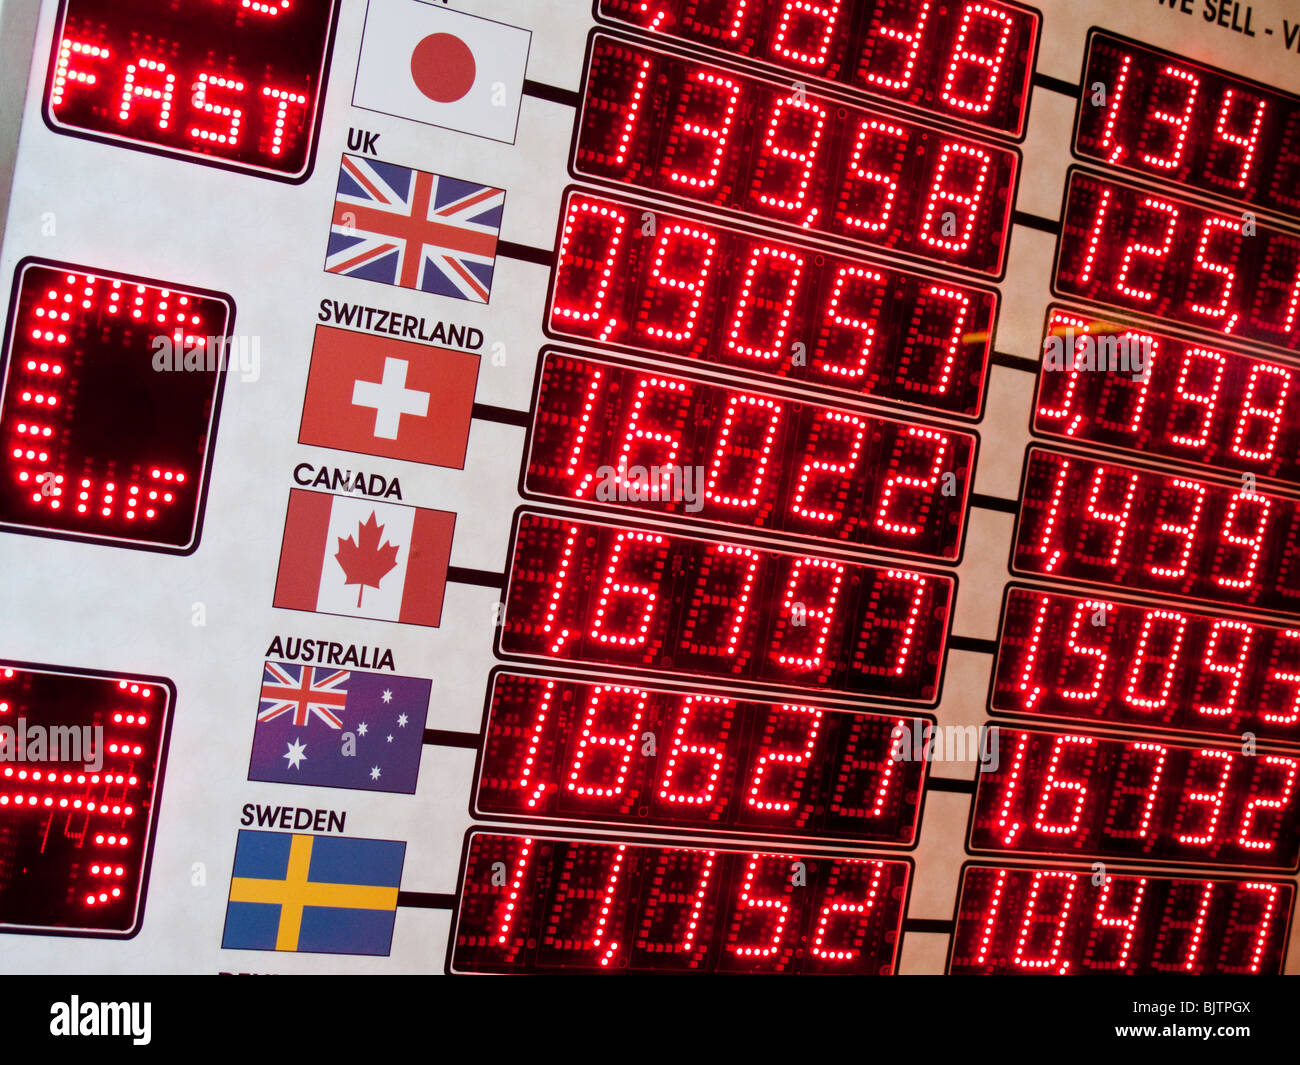 Exchange rate againt the euro, Bureau de change - Stock Image